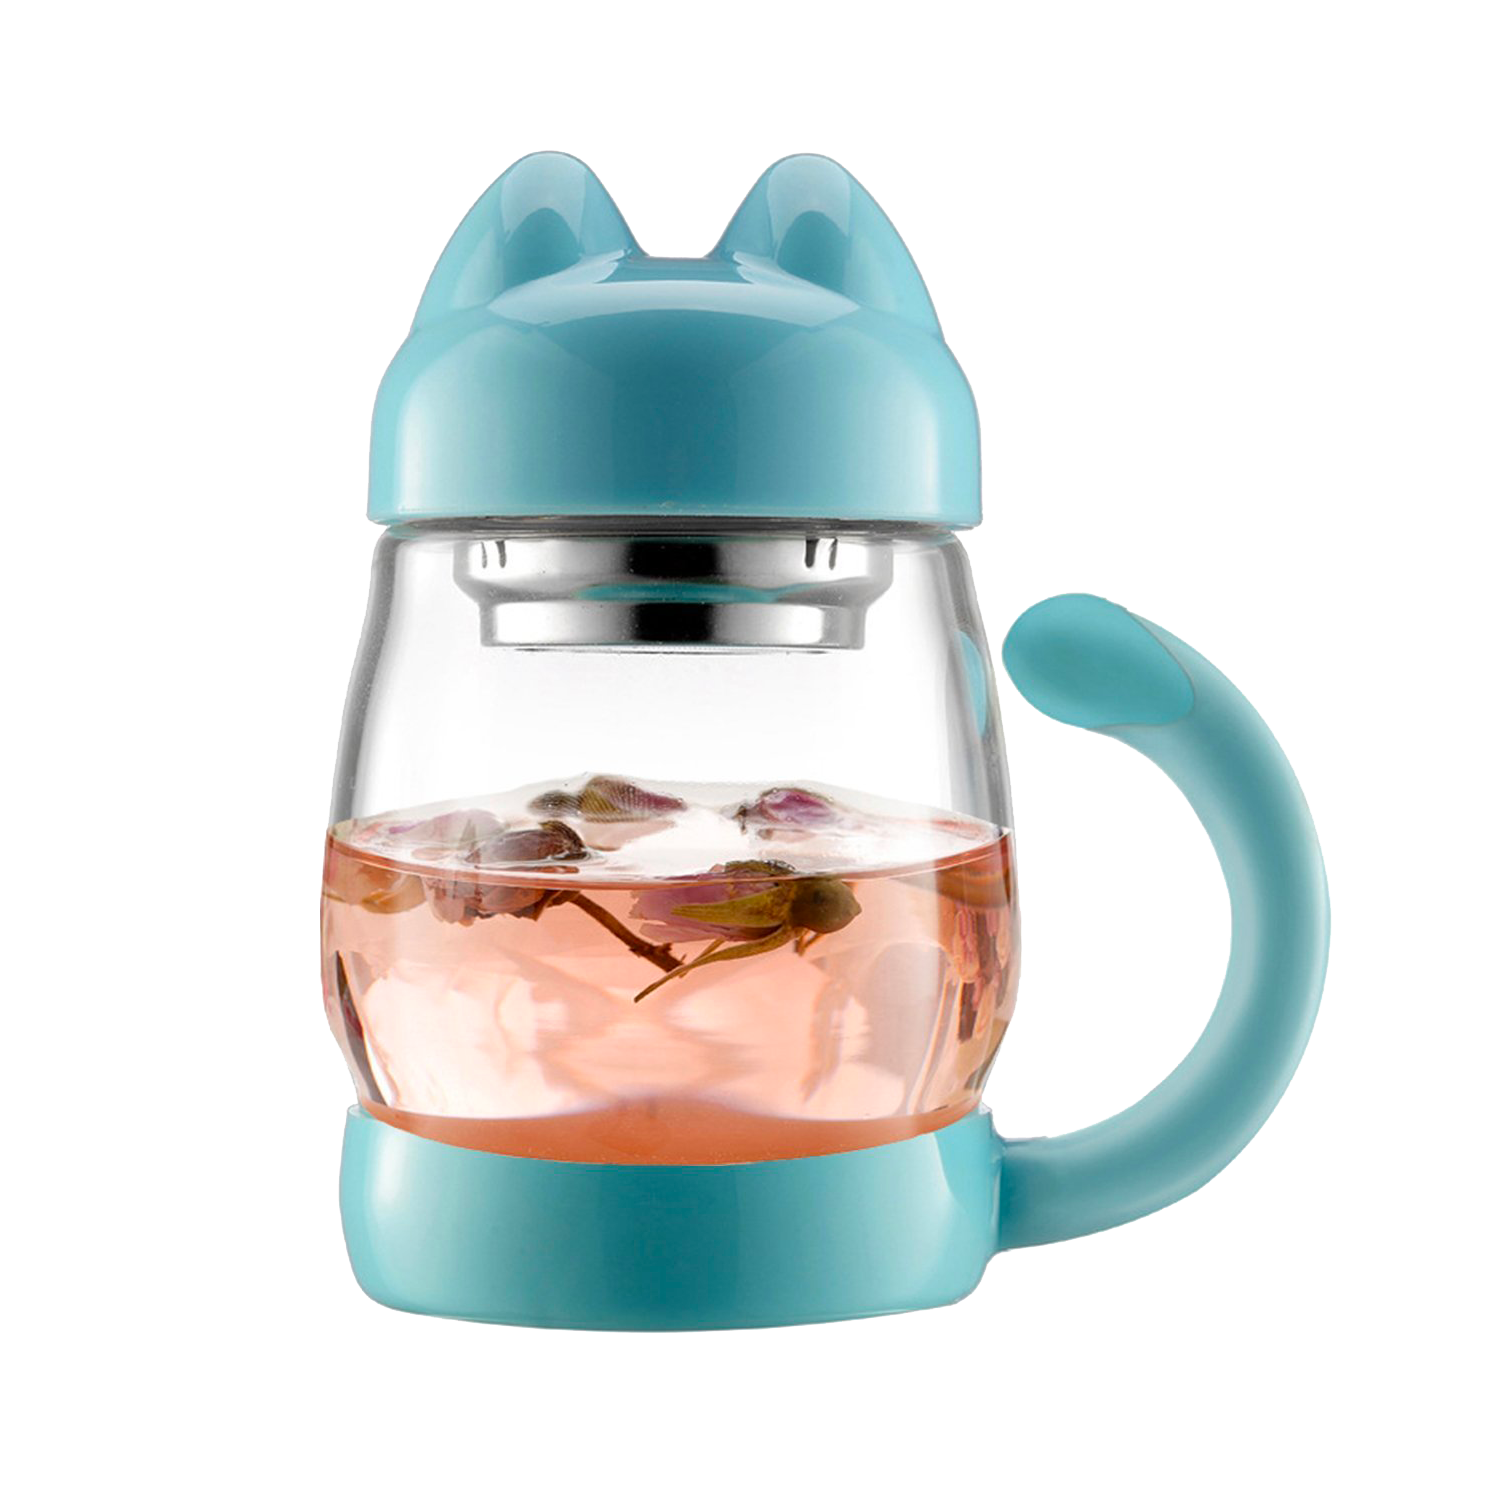 Teaow™ - Portable Tea Infuser - Conscientnetworks